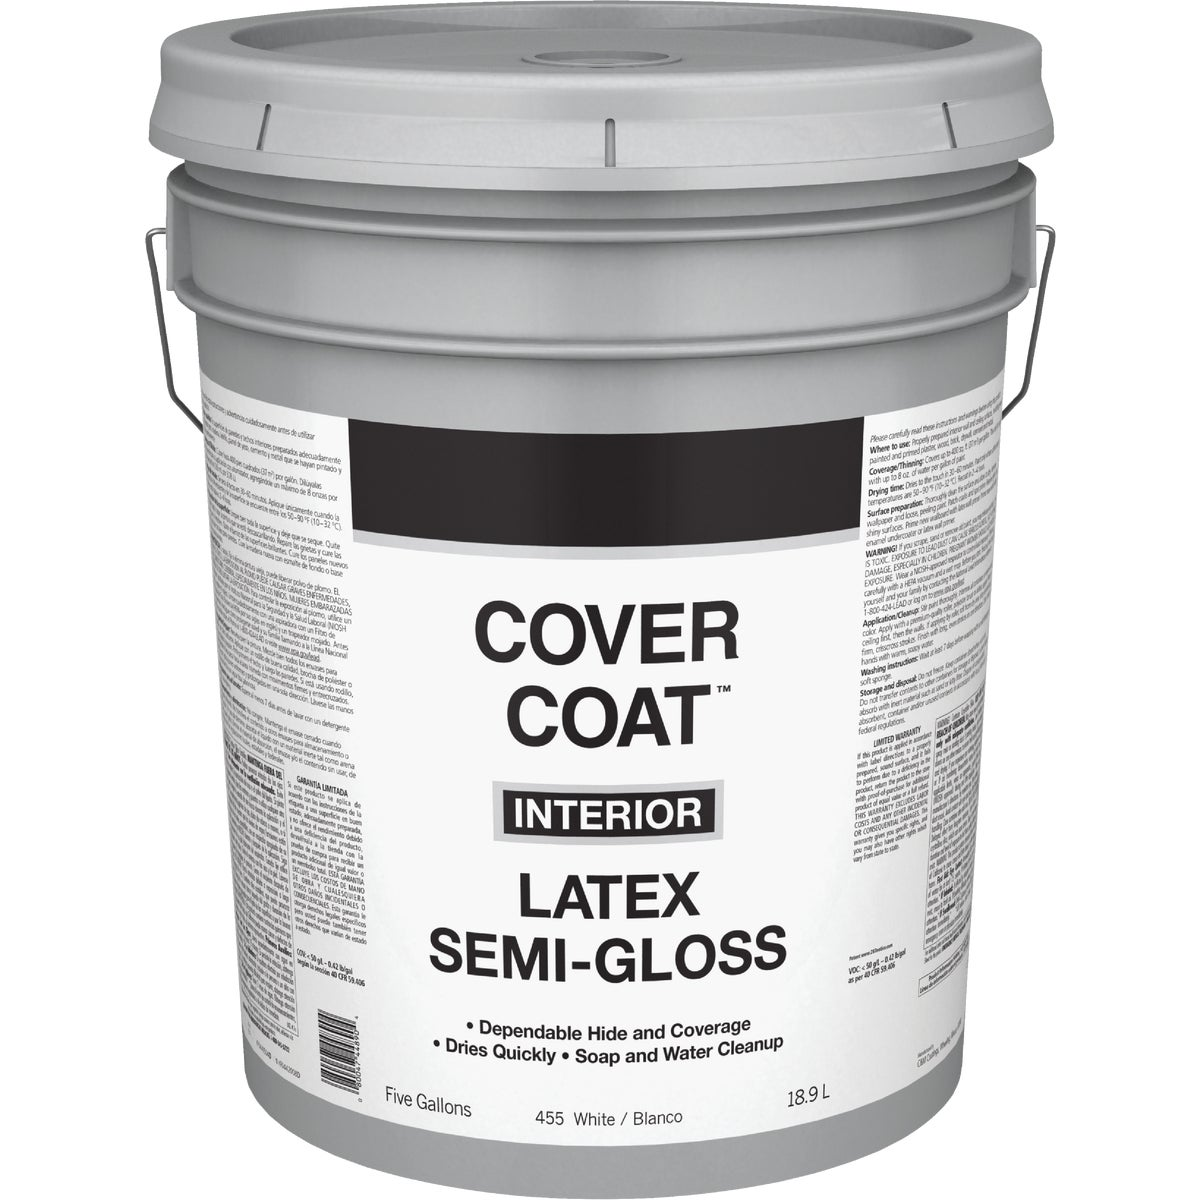 INT S/G WHITE PAINT - 044.0000455.008 by Valspar Corp